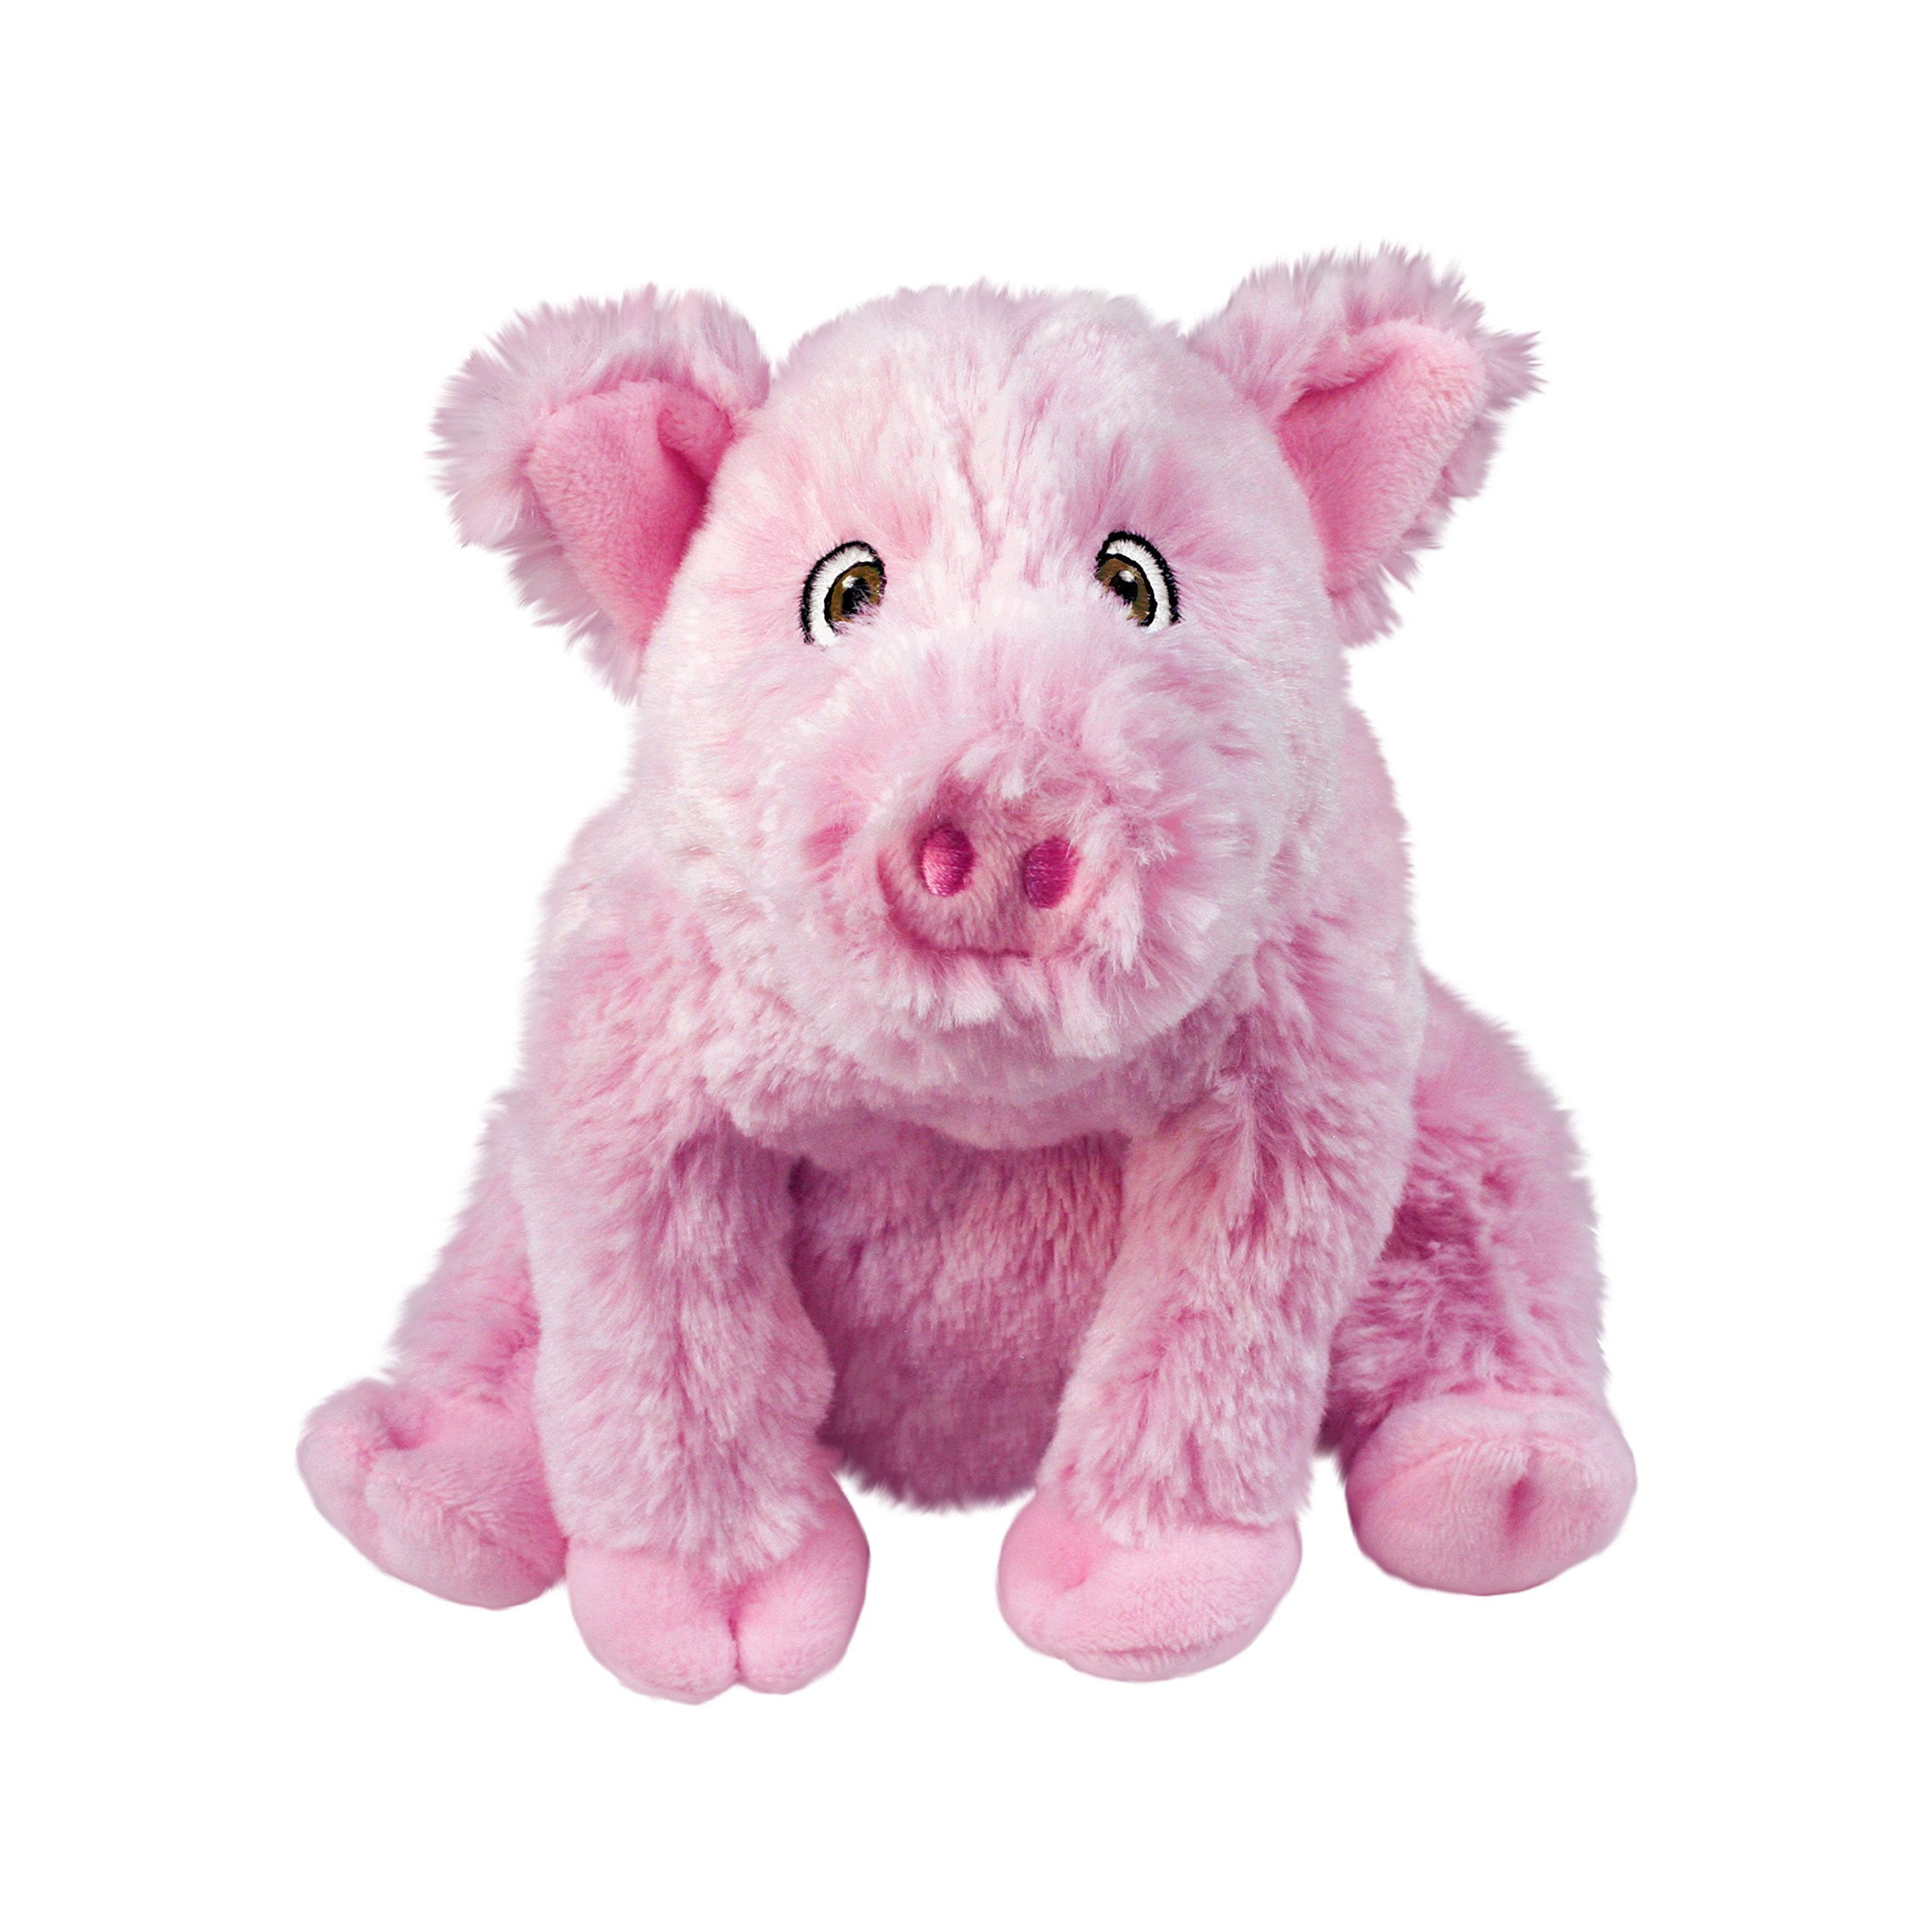 KONG Comfort Kiddos Pig Dog Toy, Large